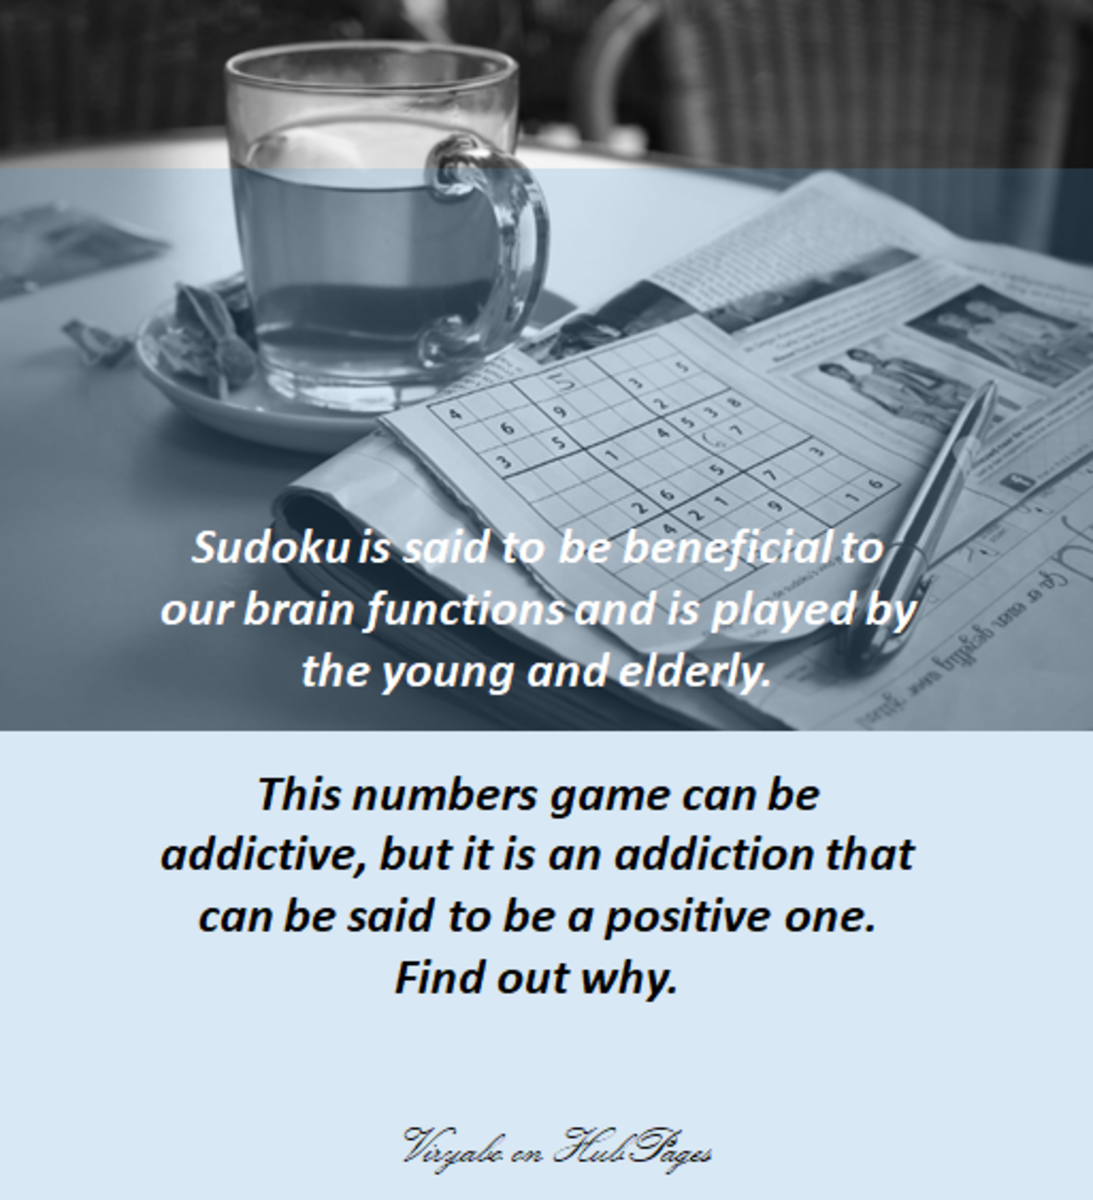 Sudoku – How This Numbers Game Benefits Our Brain